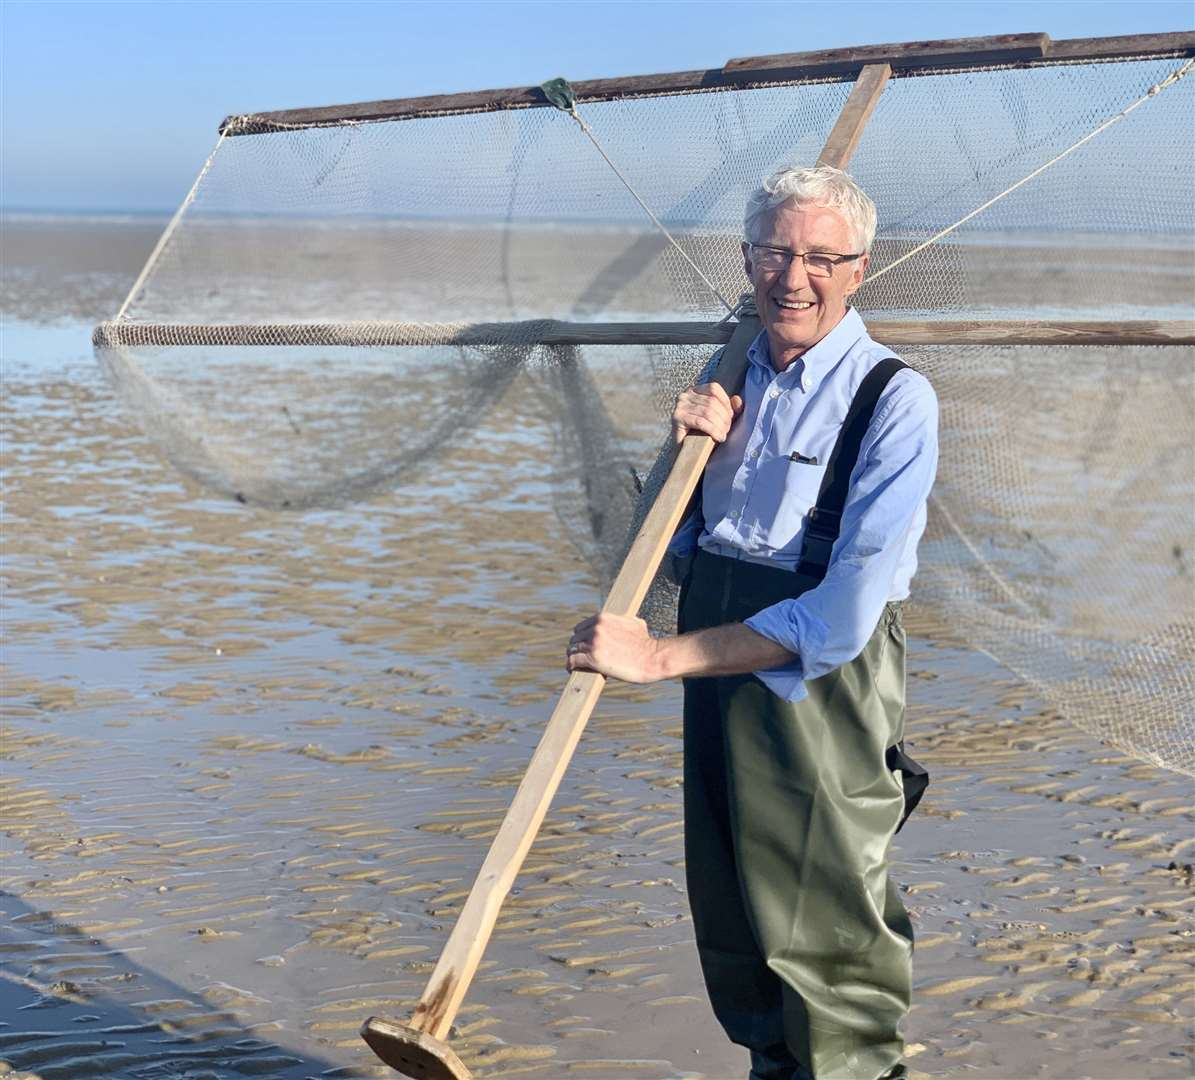 Paul O'Grady heads to Dungeness beach, to go 'shrimping'Picture: Olga Productions/ITV